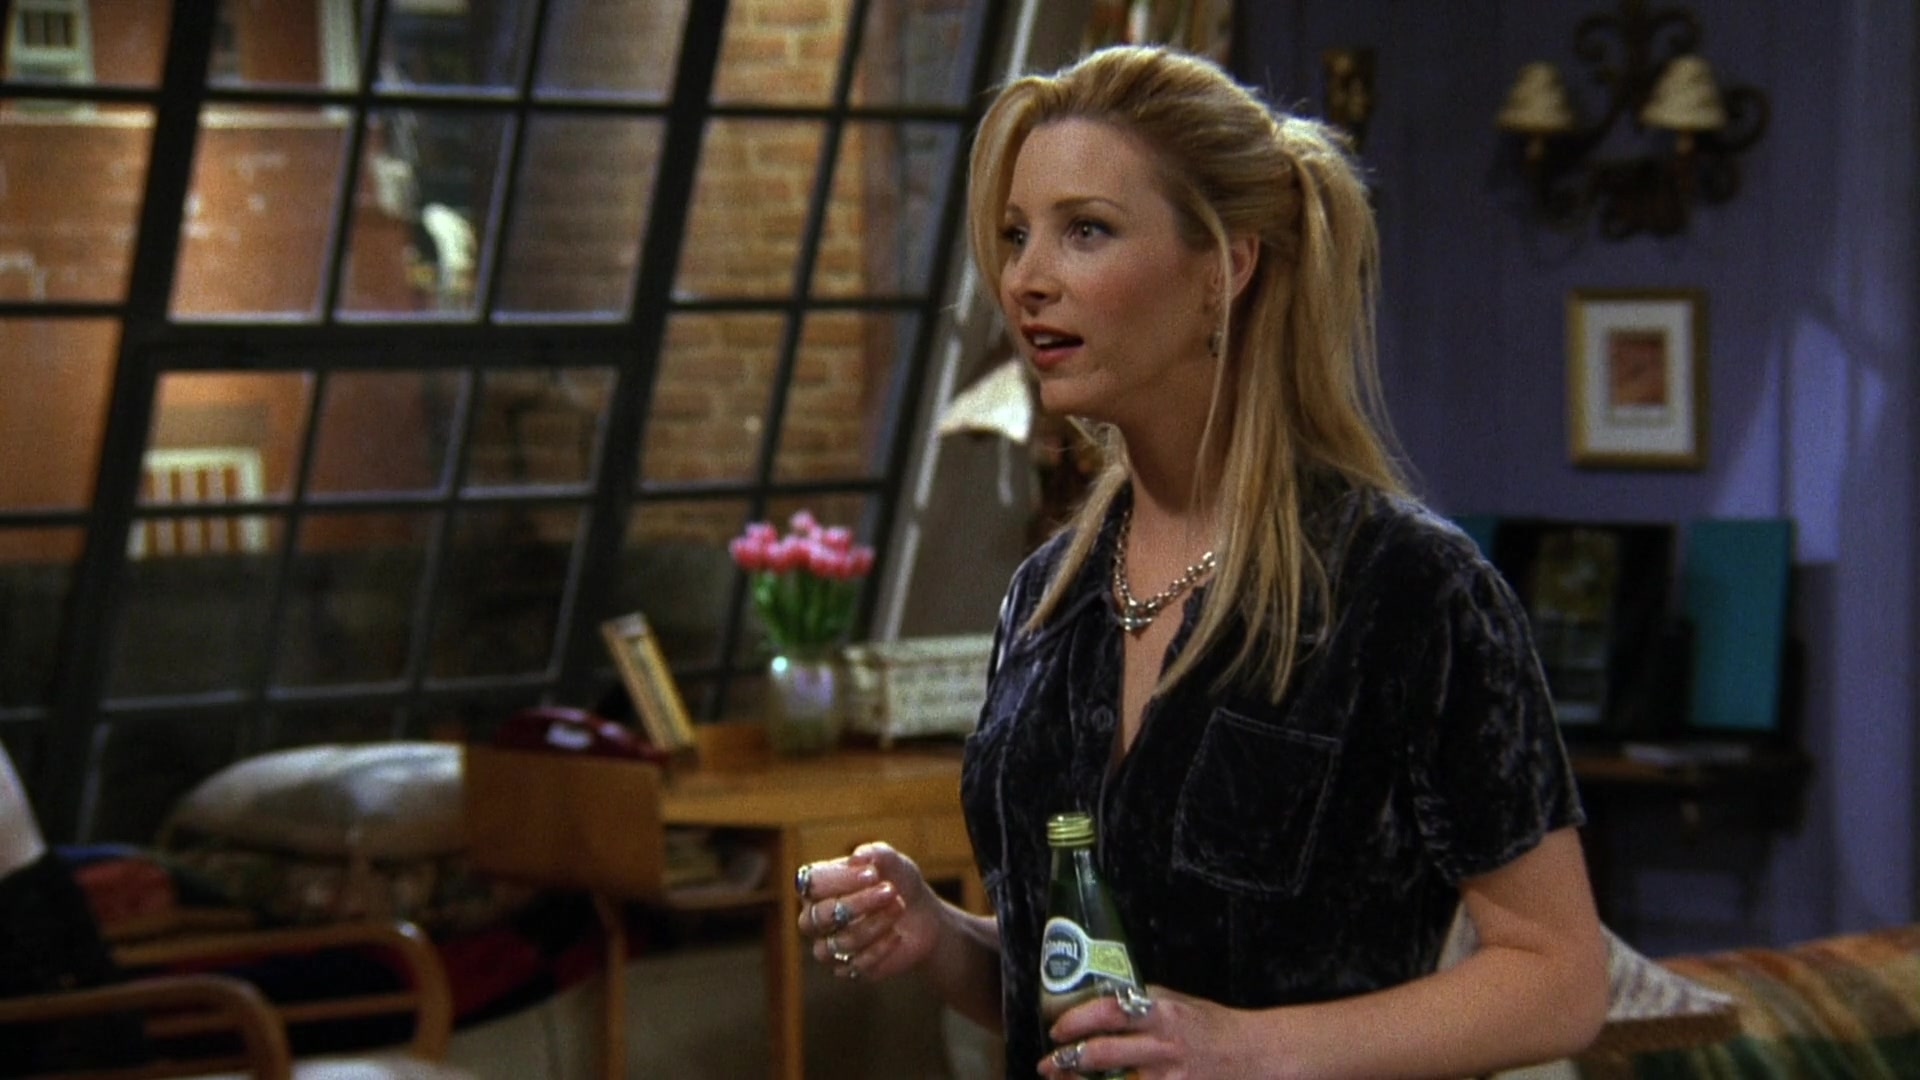 Perrier Water Bottle Held by Lisa Kudrow (Phoebe Buffay) in